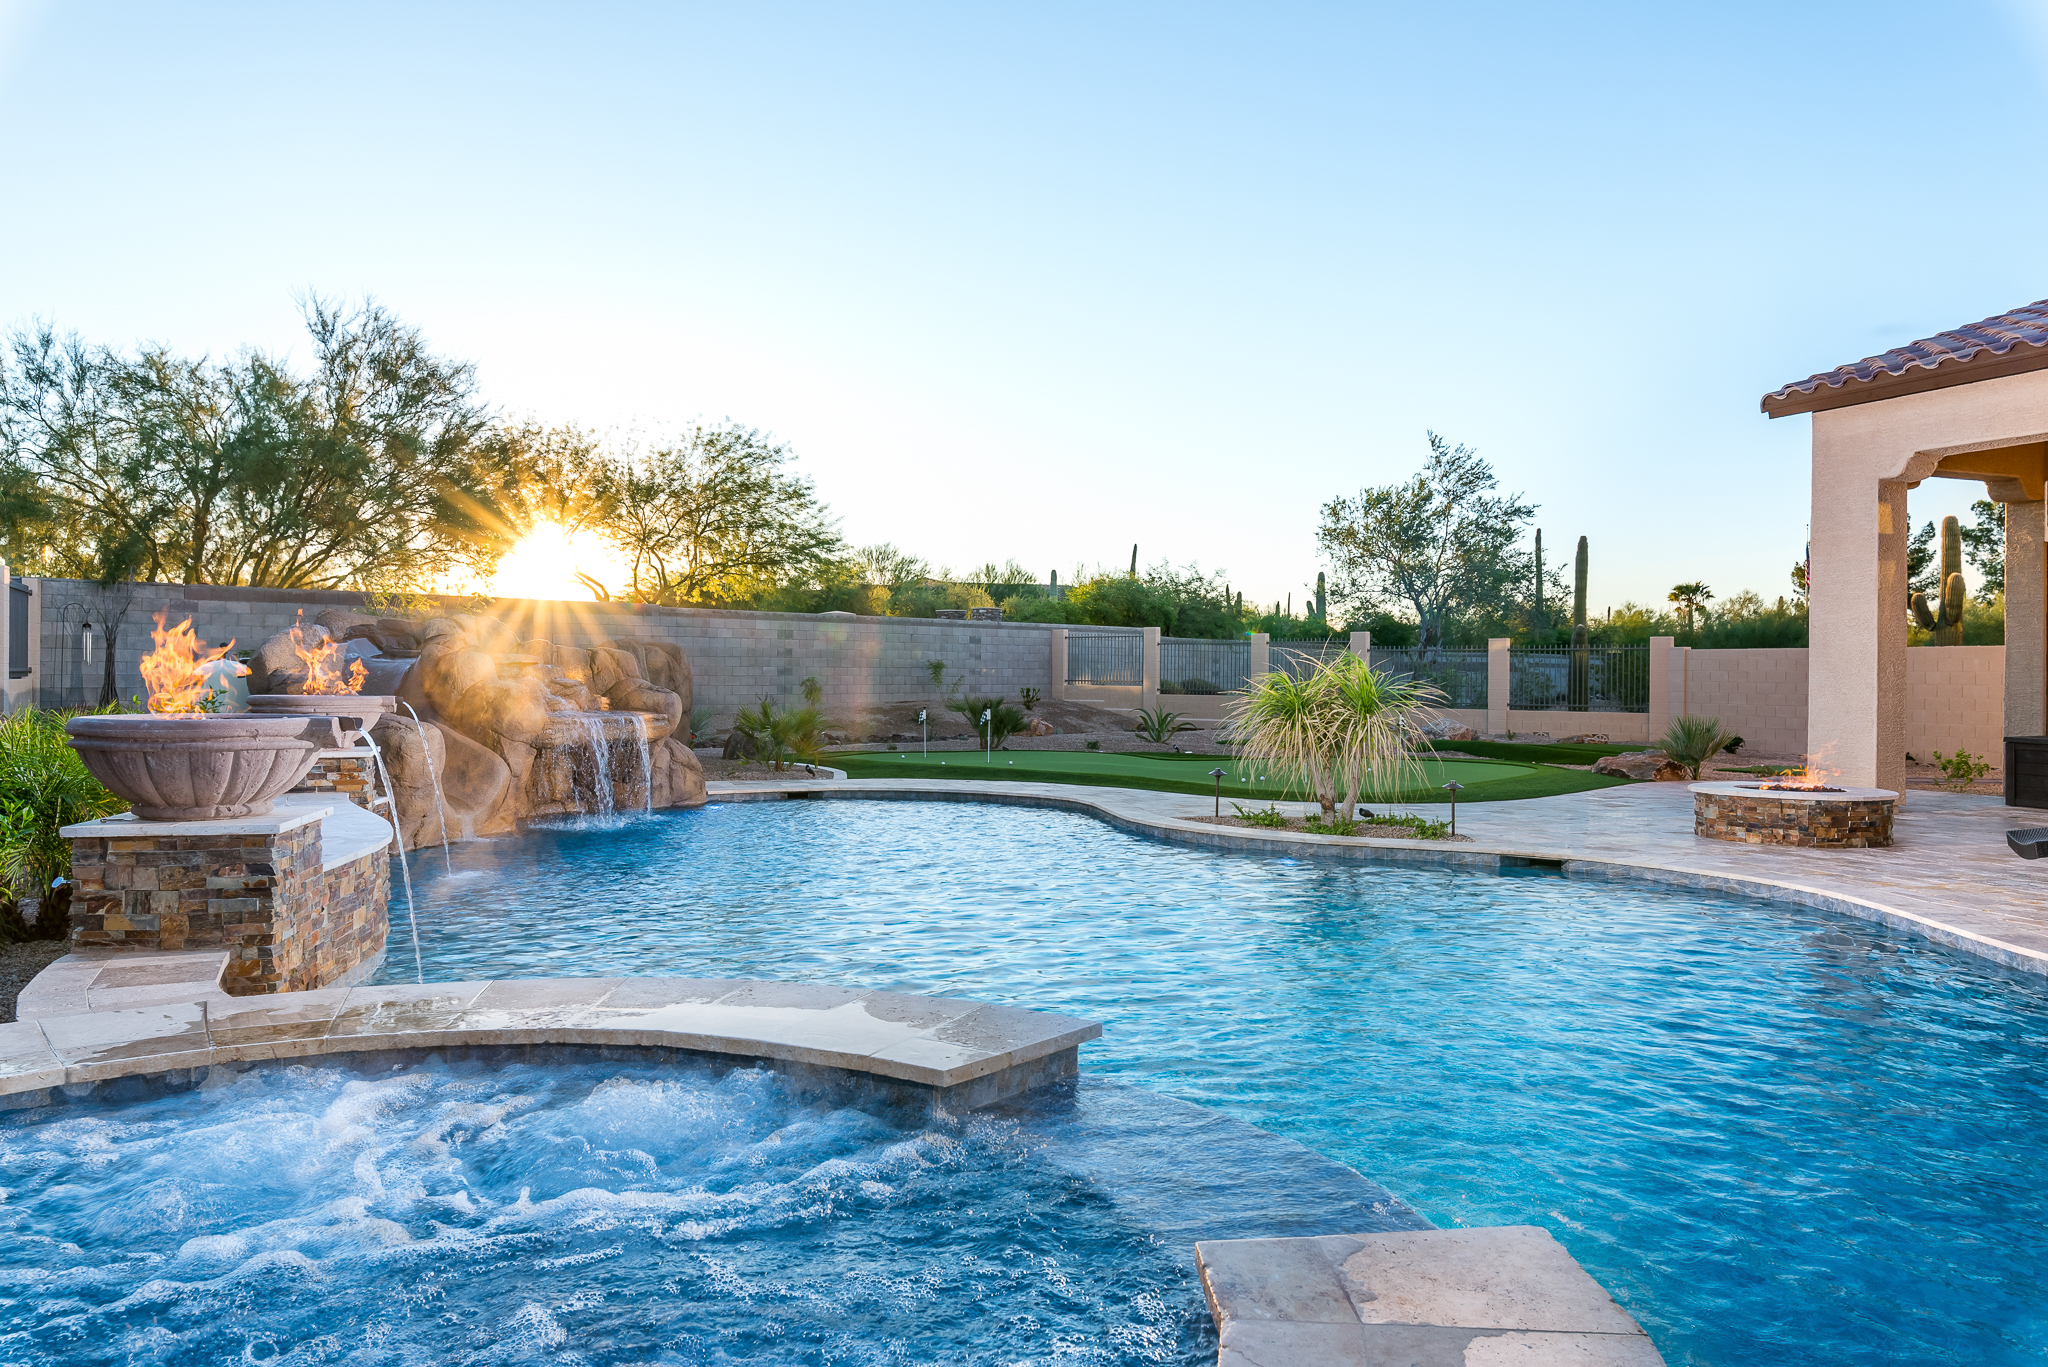 Mesa Swimming Pool Design Presidential Pools Karin Tierney with Spa Fire Features and Waterfall with Slide